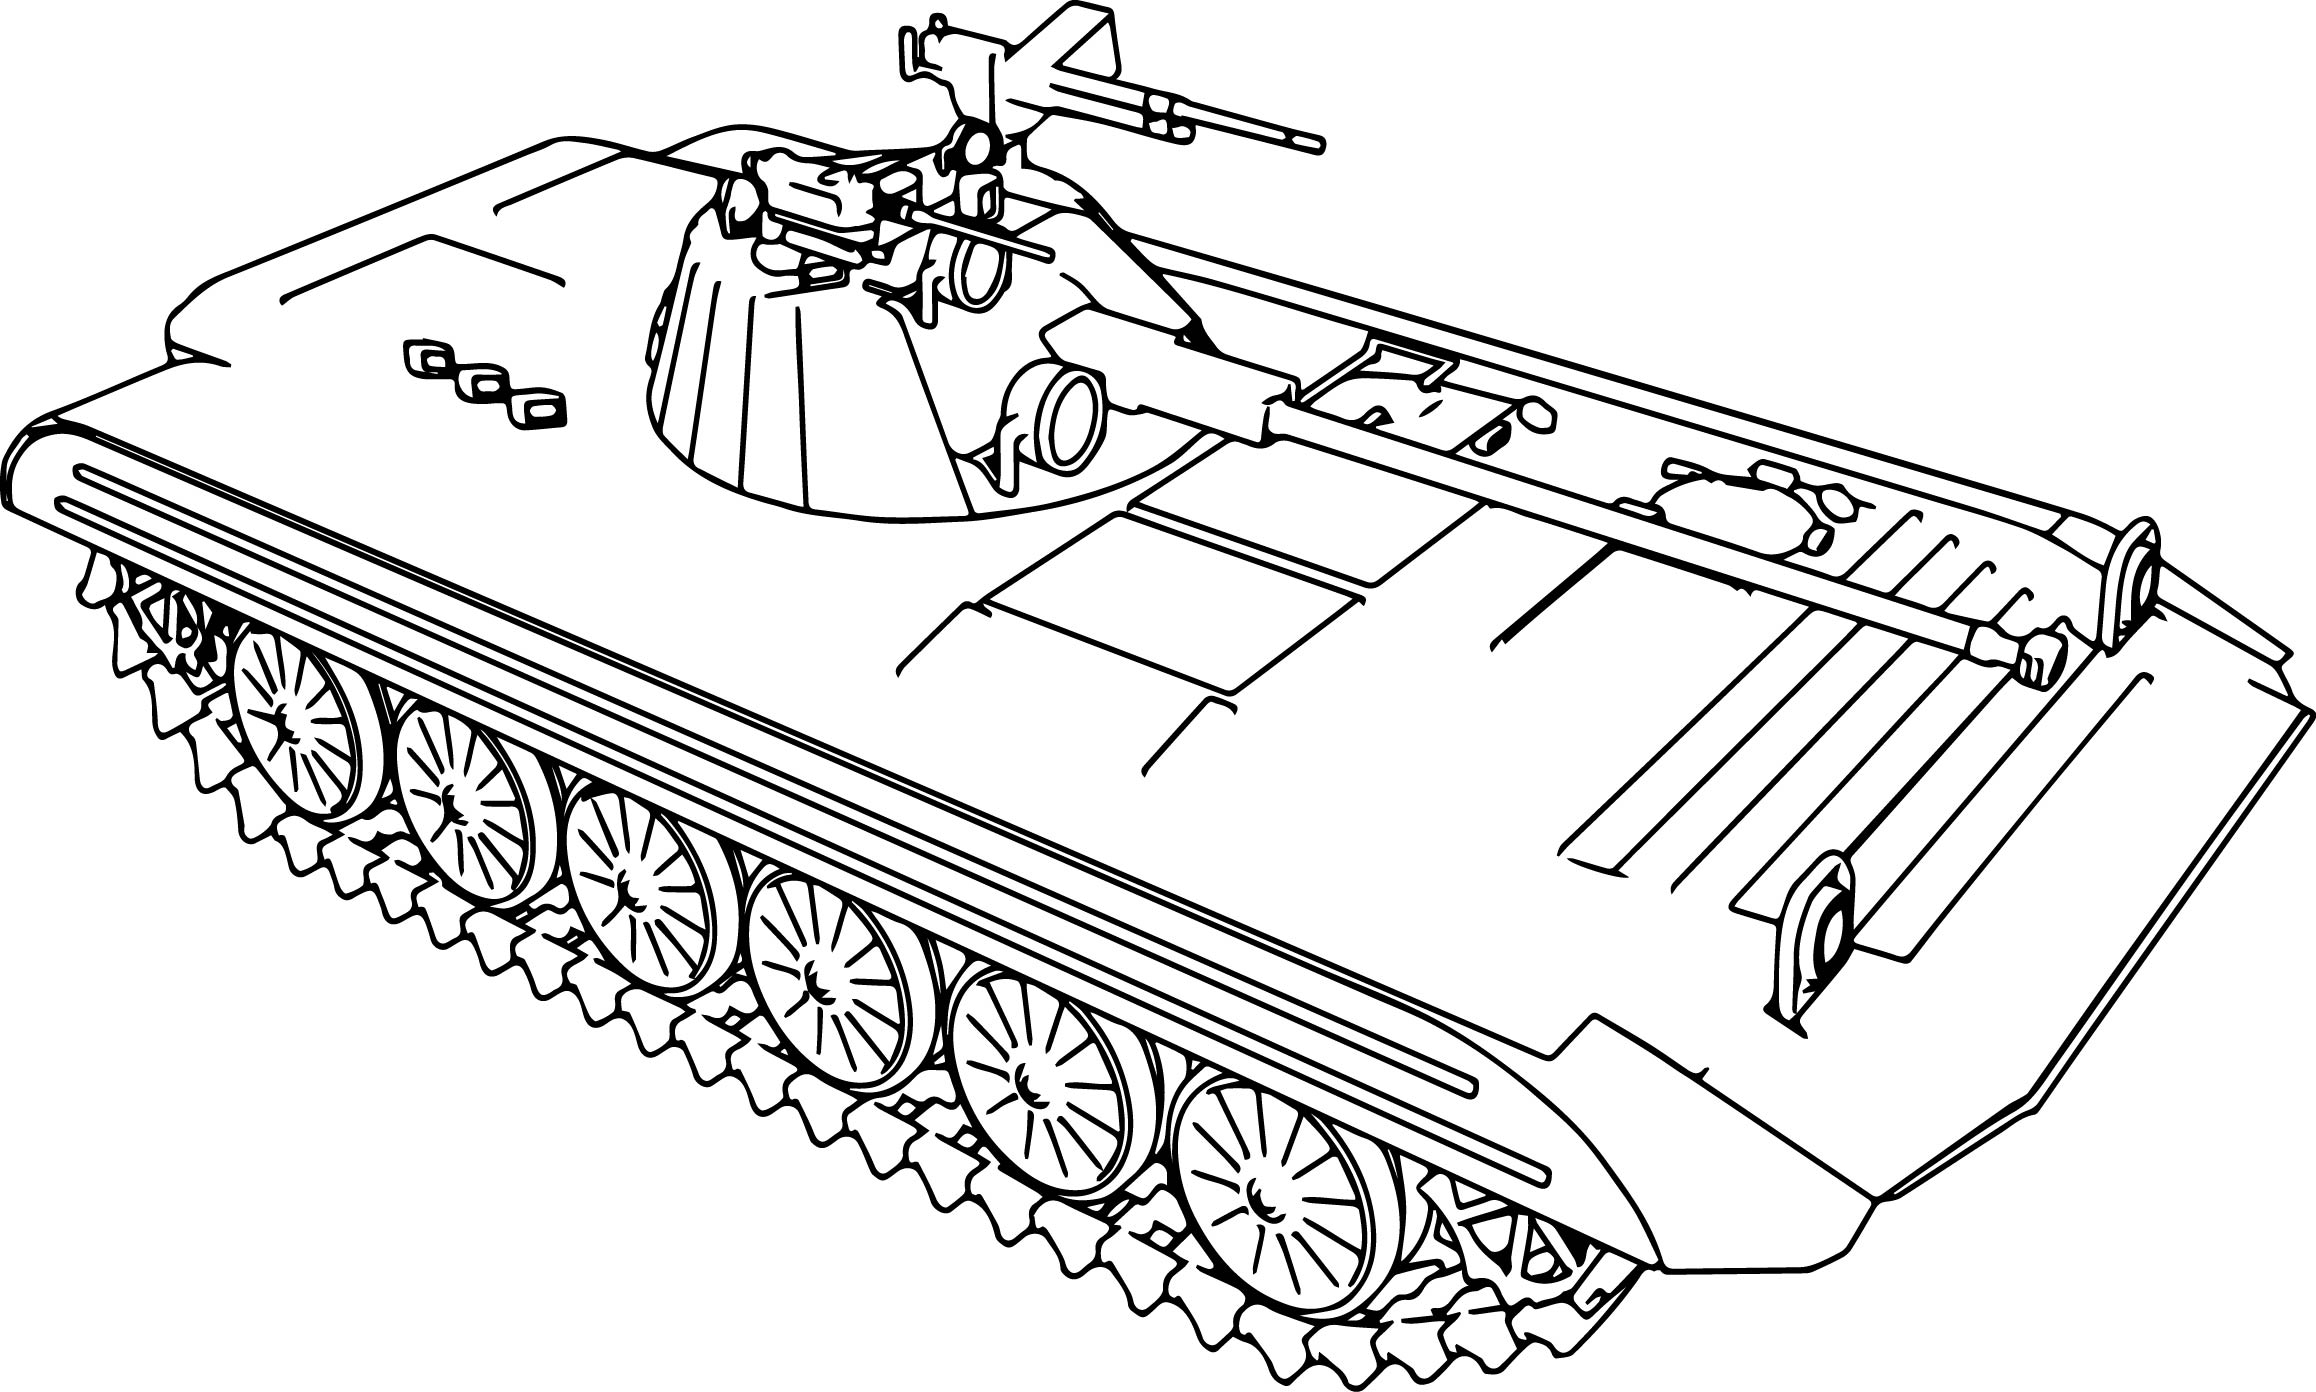 Apc tank coloring page for Tank coloring page